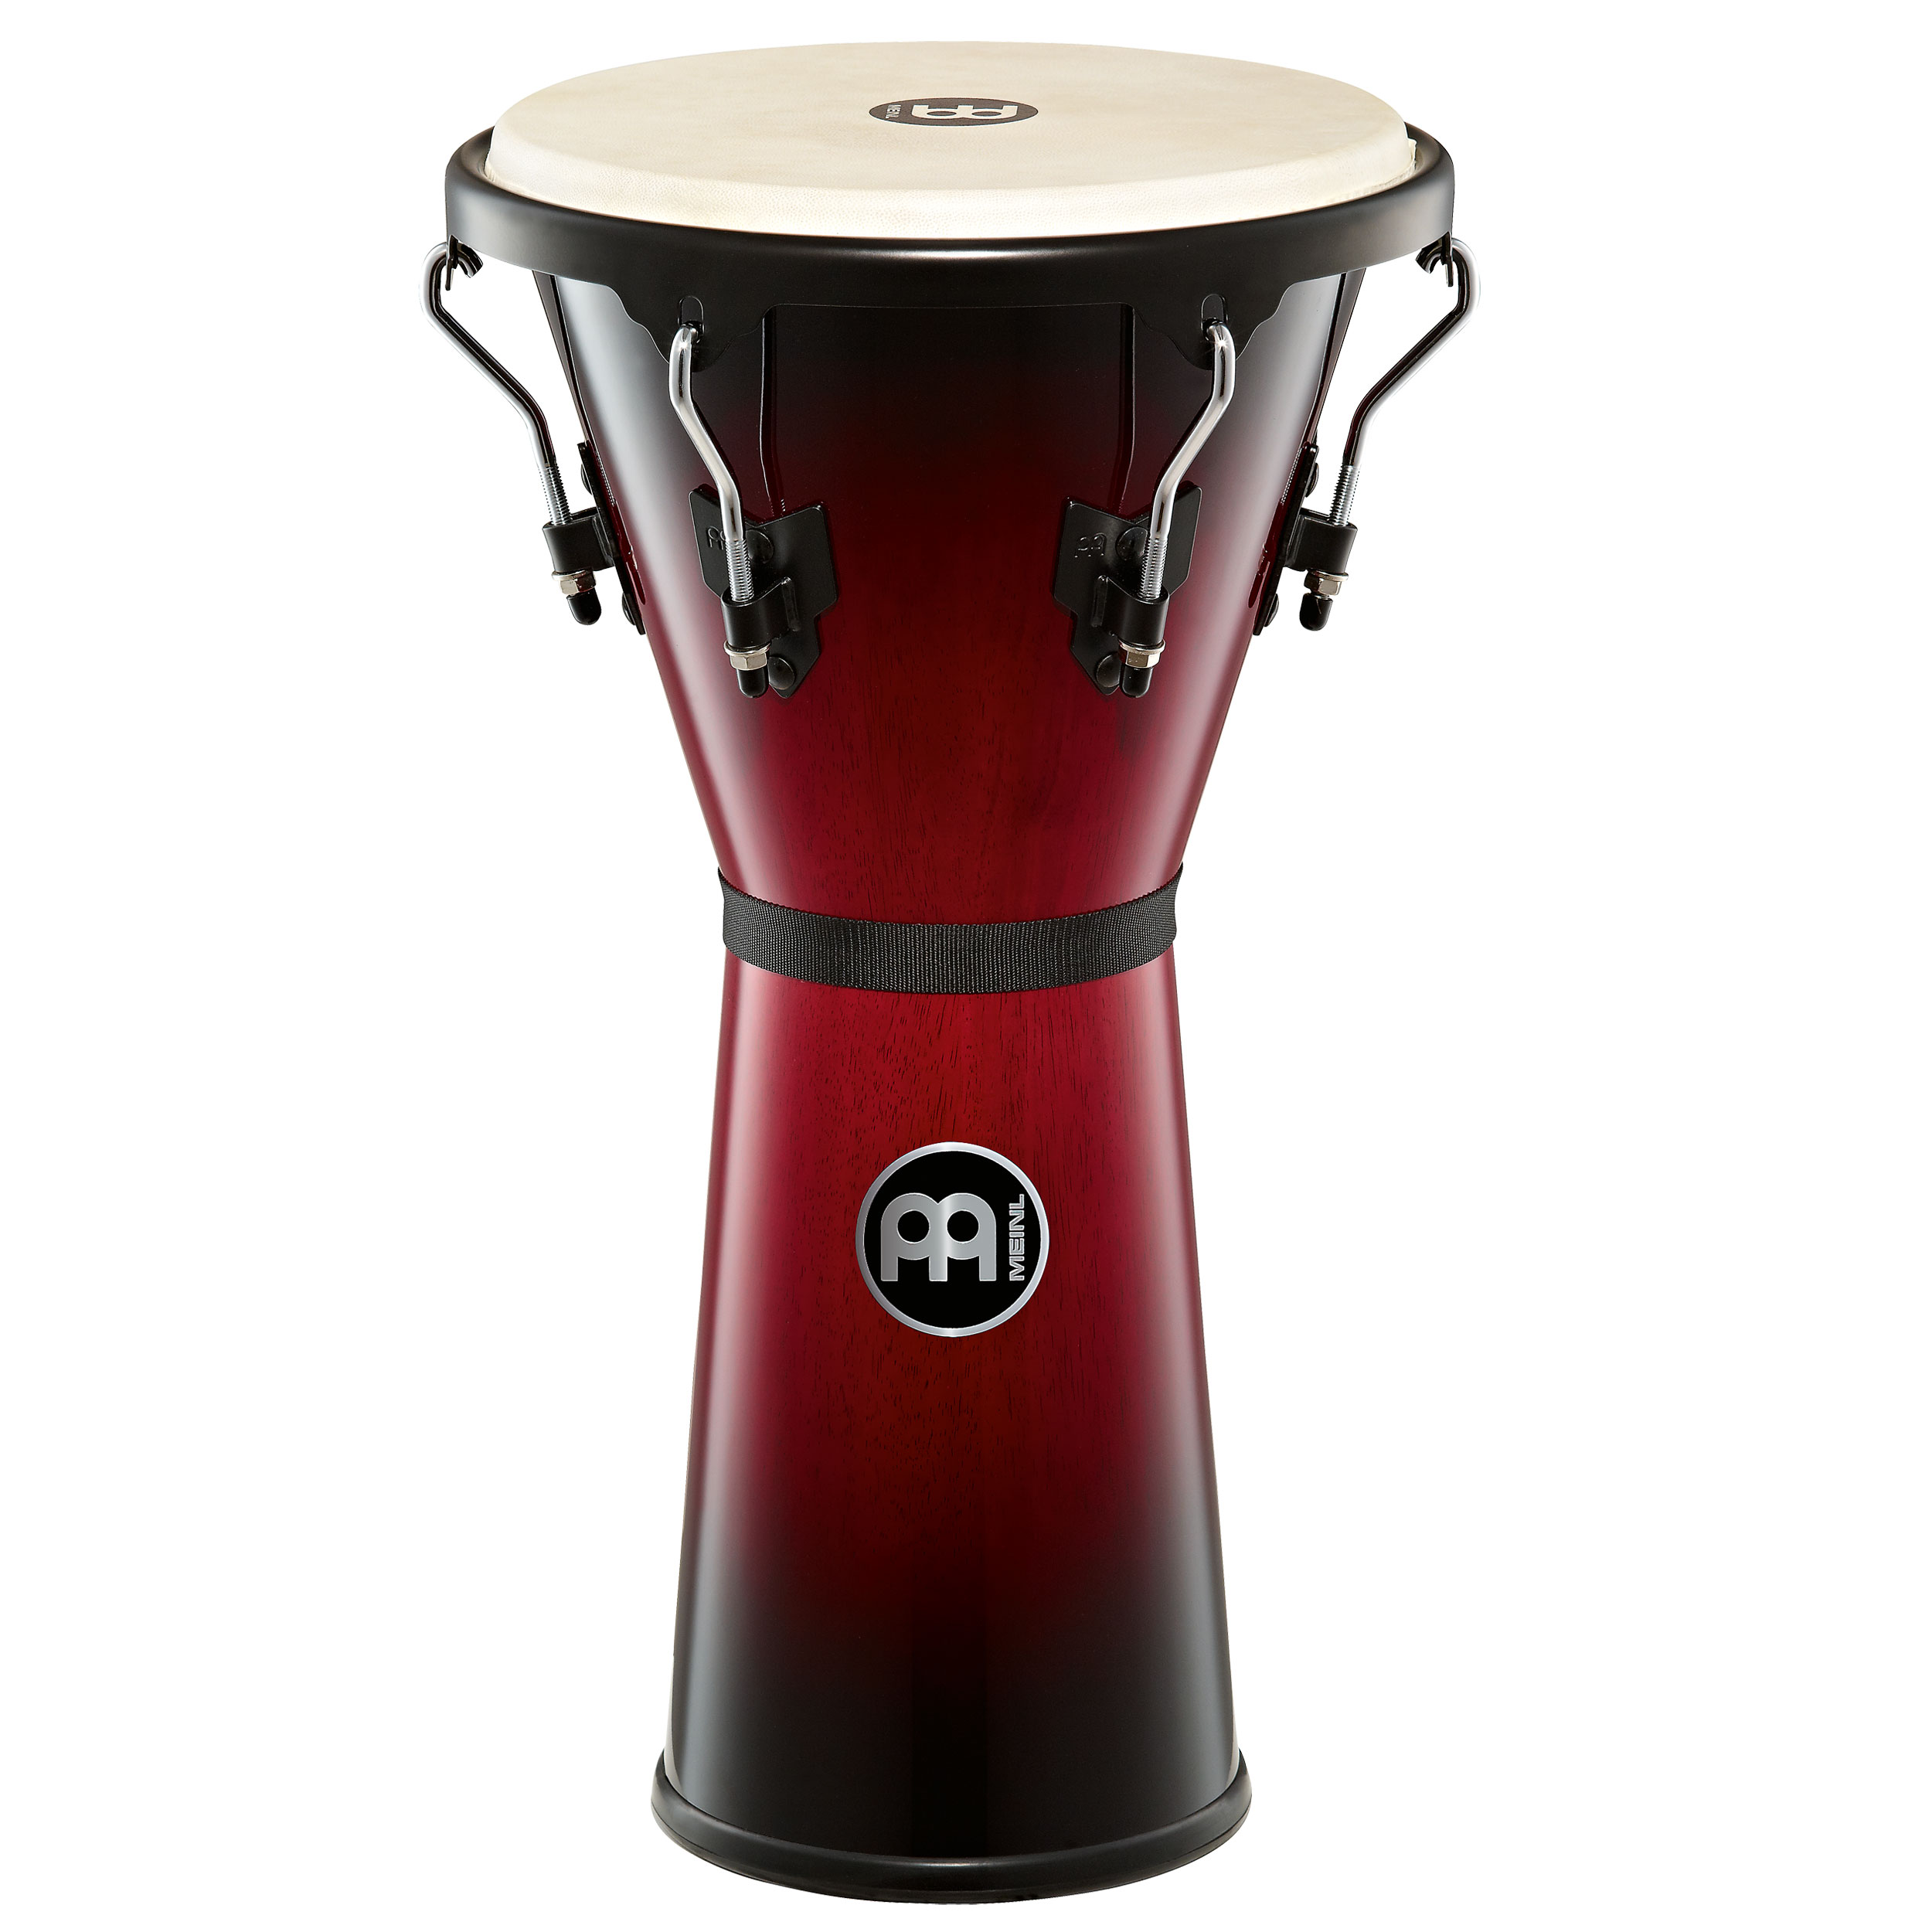 "Meinl 12 1/2"" Headliner Series Wood Djembe in Wine Red Finish"